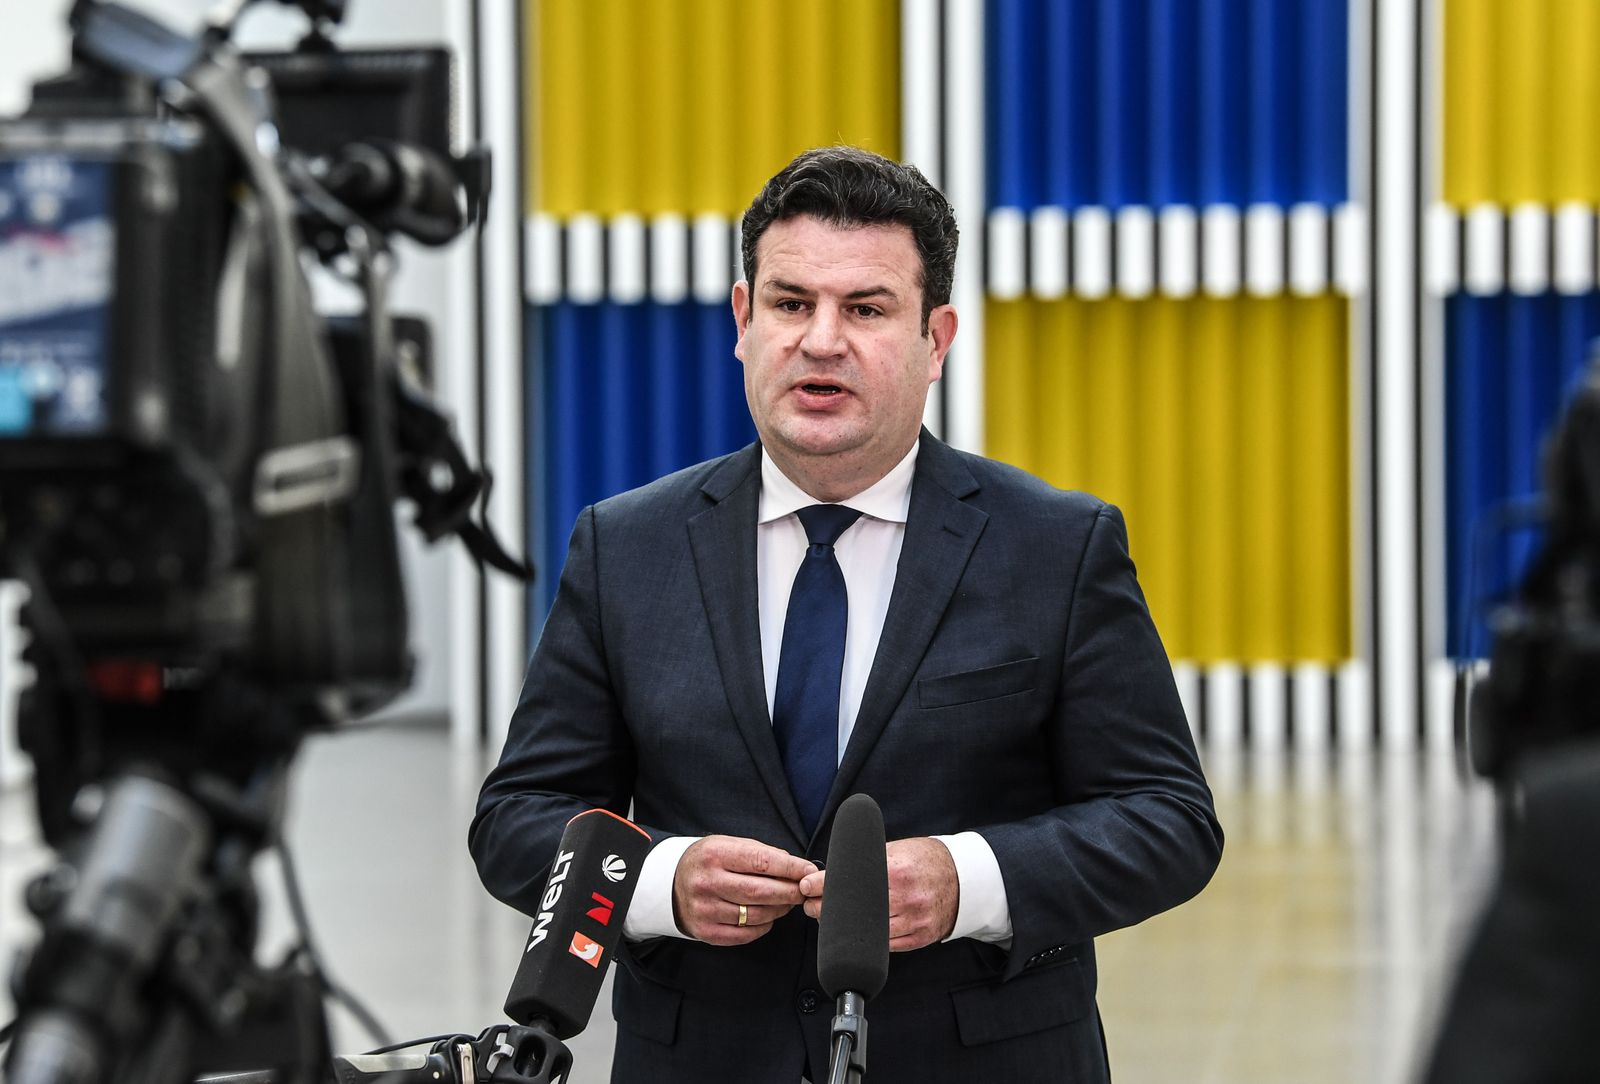 Press conference of German Minister of Labor and Social Affairs Hubertus Heil, Berlin, Germany - 30 Sep 2020